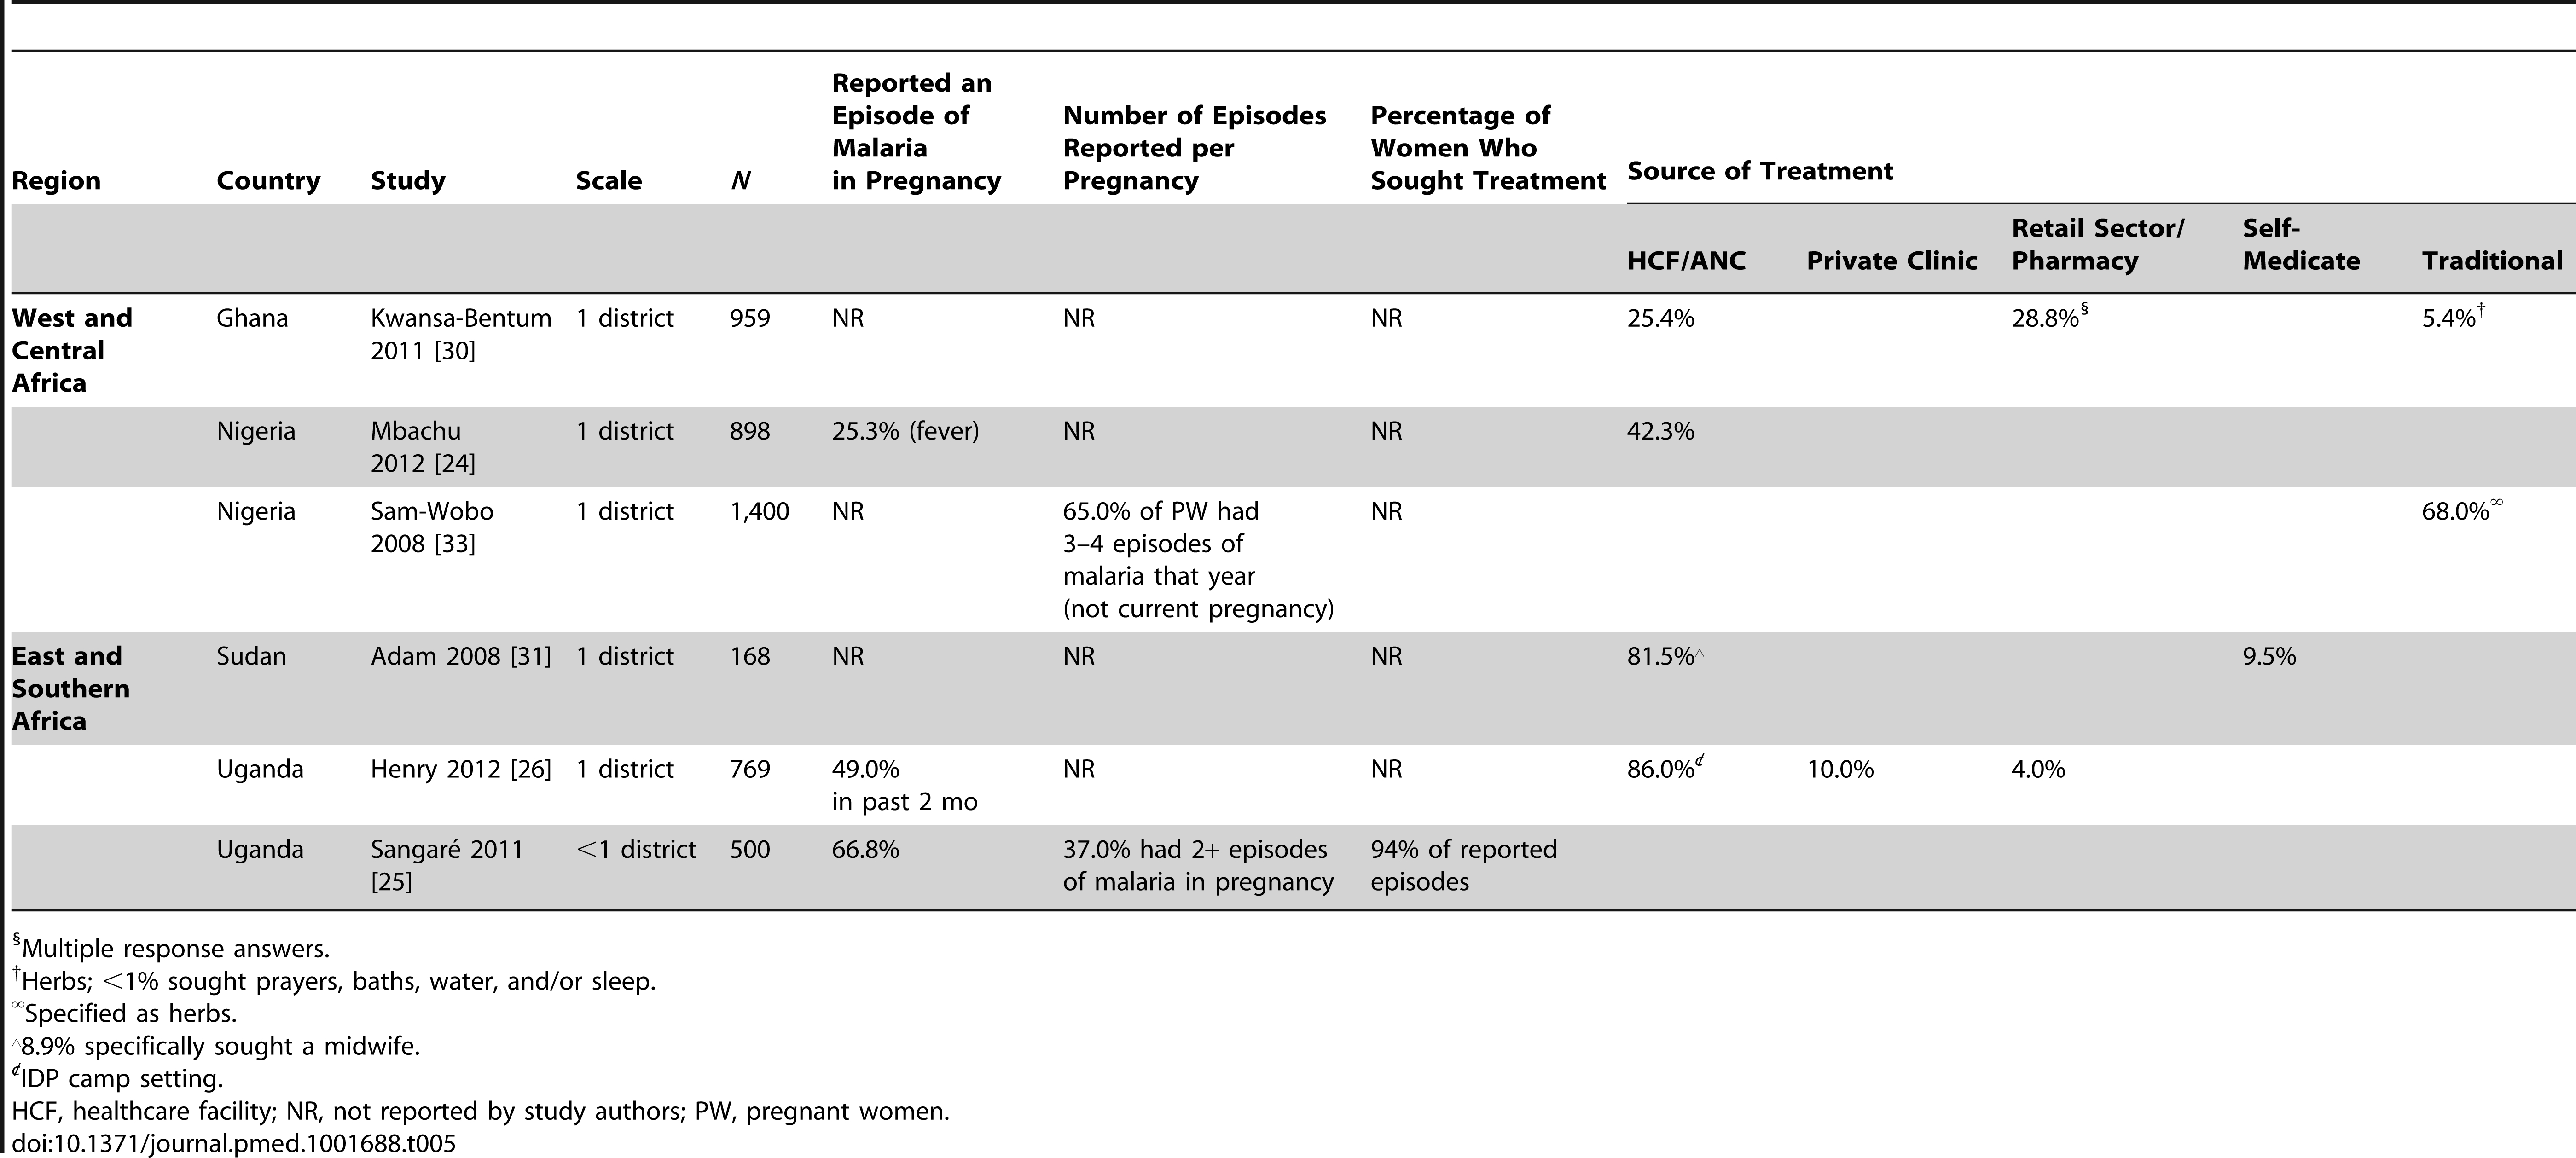 Symptoms and number of episodes of malaria in pregnancy, and percentage who sought treatment by source, reported by pregnant women: population-based studies.